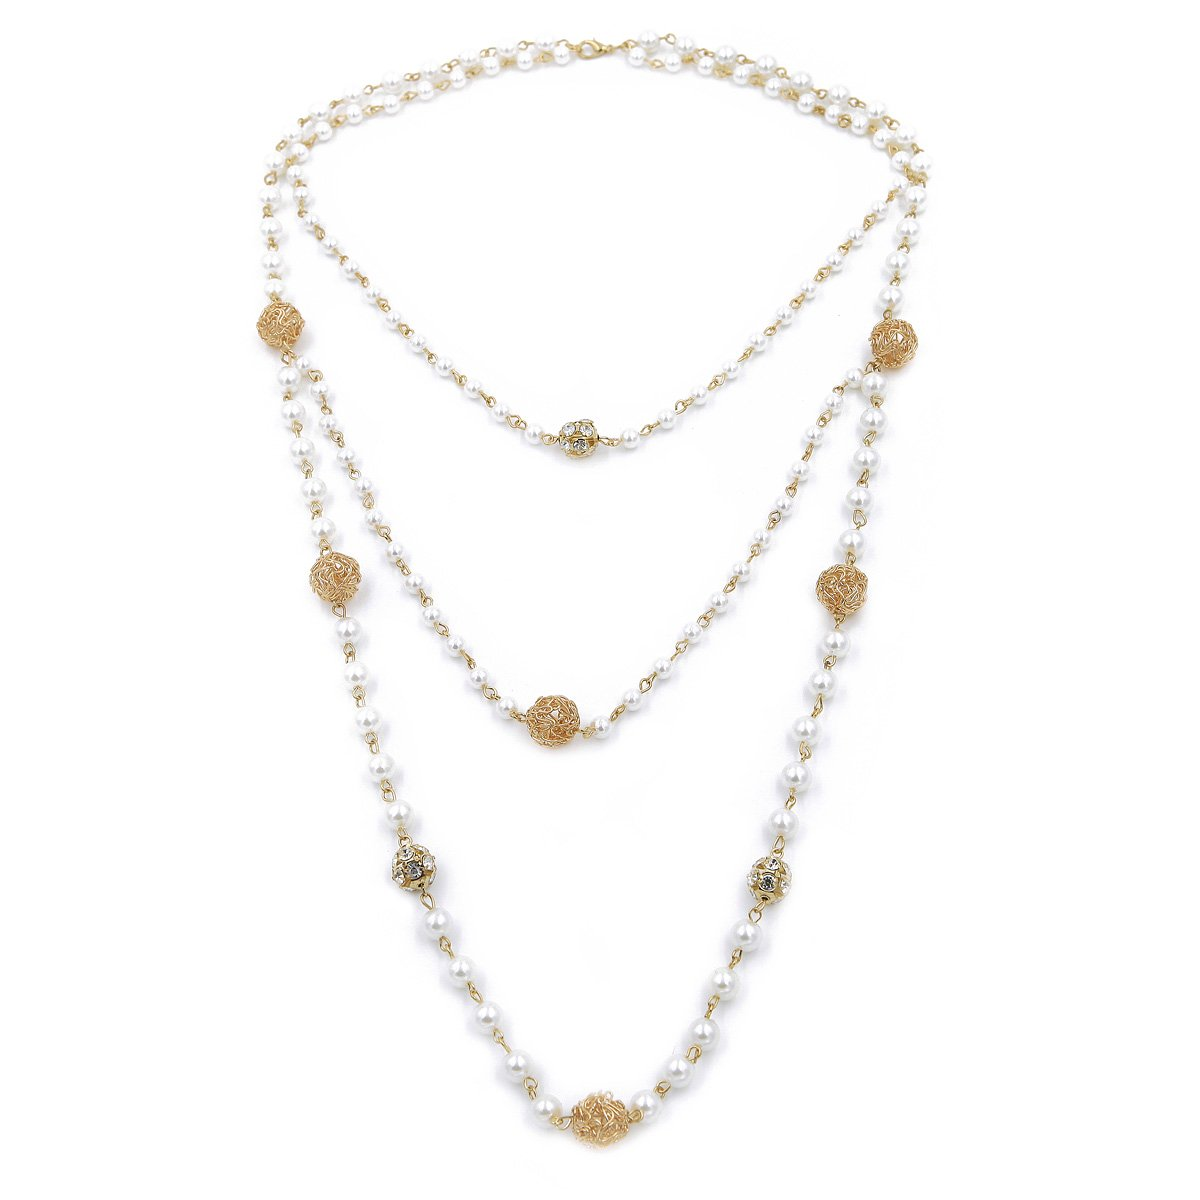 Elegant Gold Tone Simulated White Pearl & Rhinestone Long Layered Necklace TrendsBlue NC144